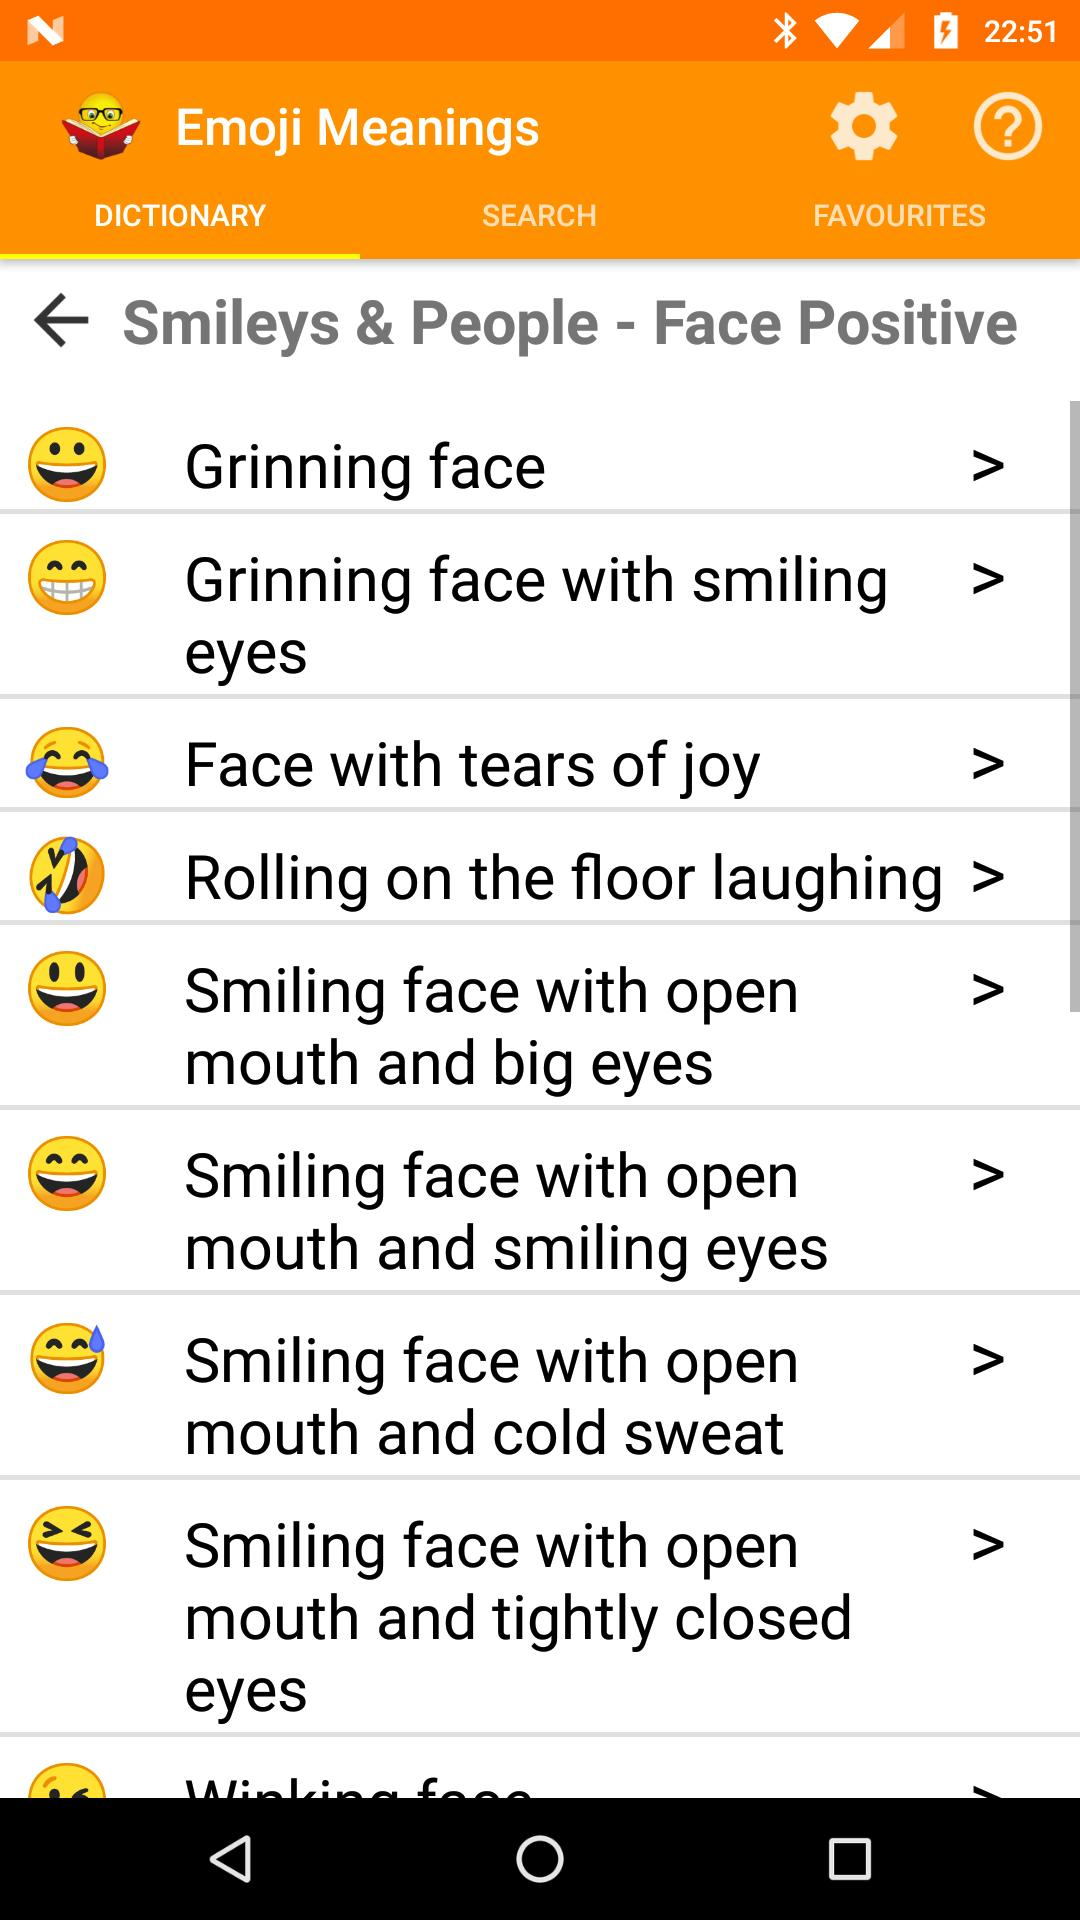 Emoji Meanings for Android - APK Download